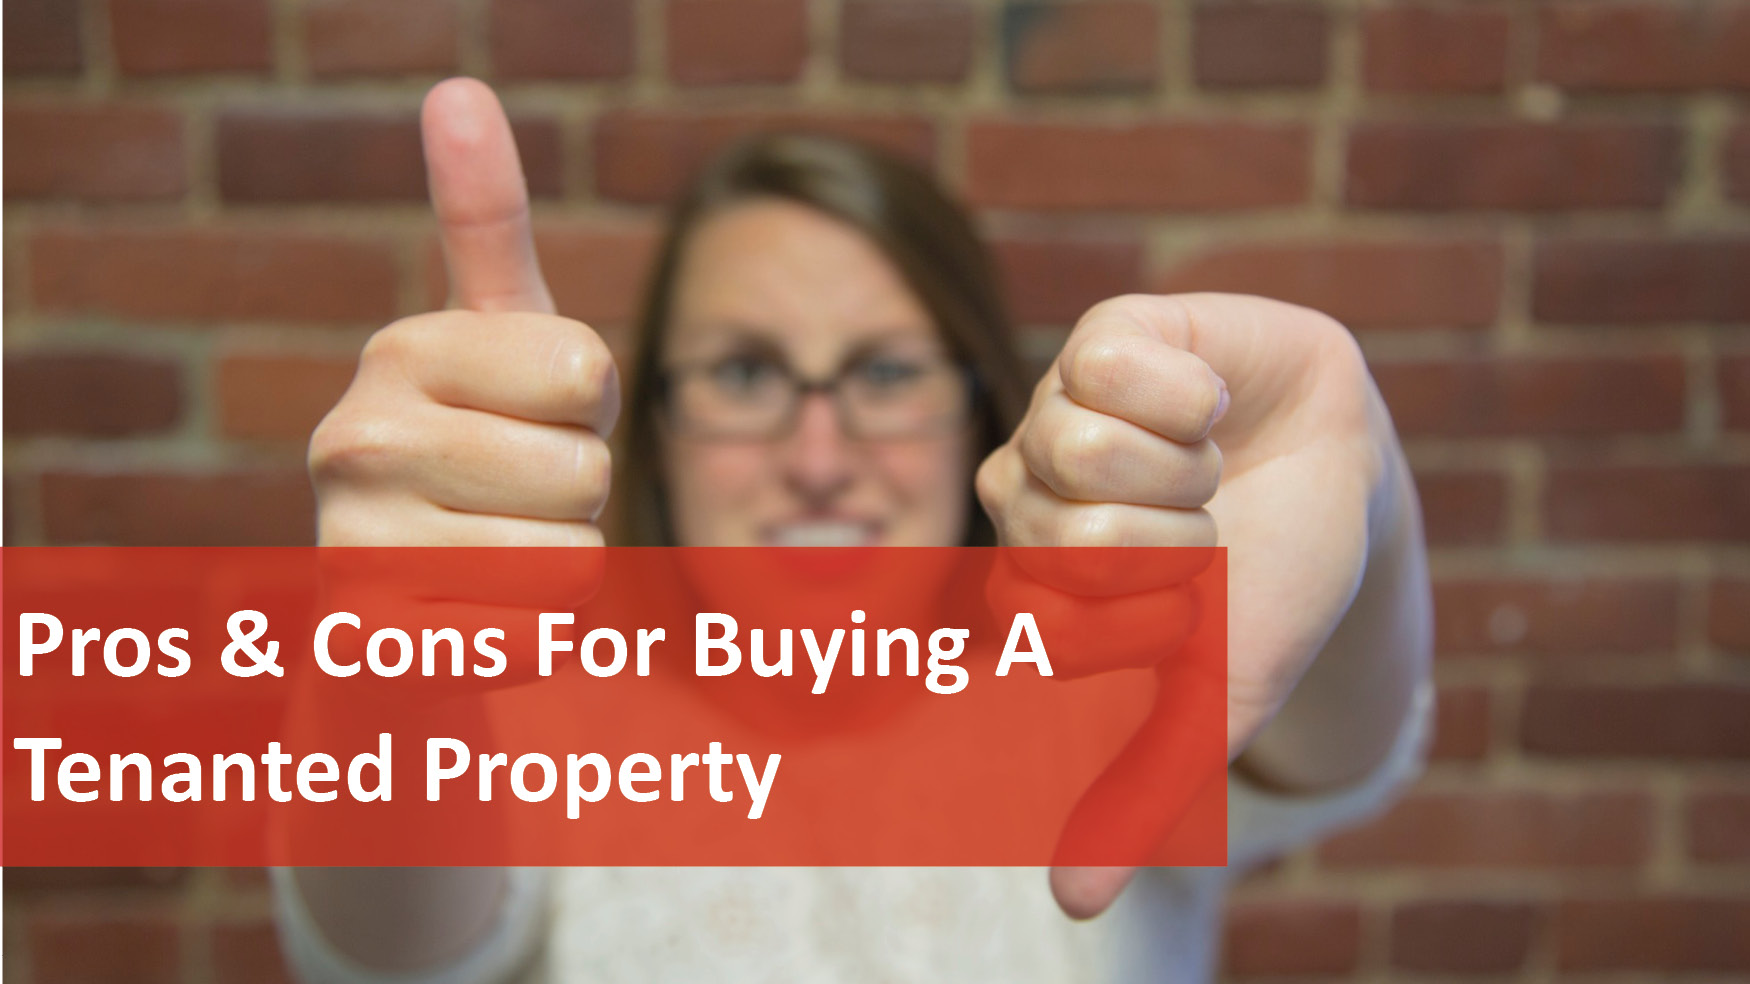 We Love Rentals Pros Cons For Buying A Tenanted Property